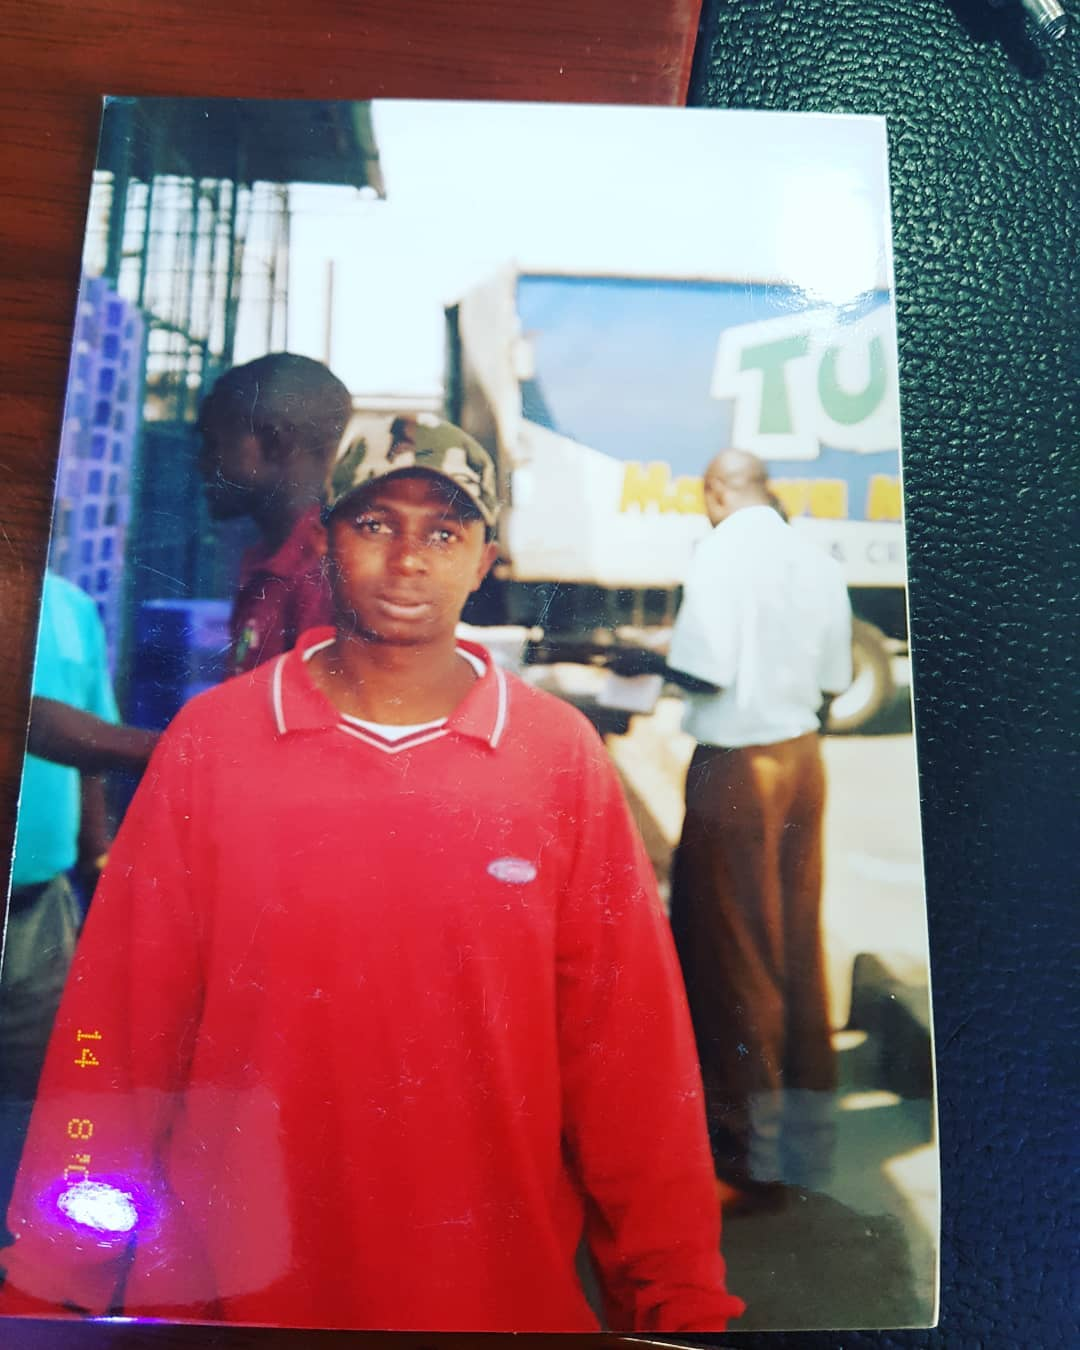 Simon Kabu while he was still loading and off-loading milk at Tuzo and Brookside companies.